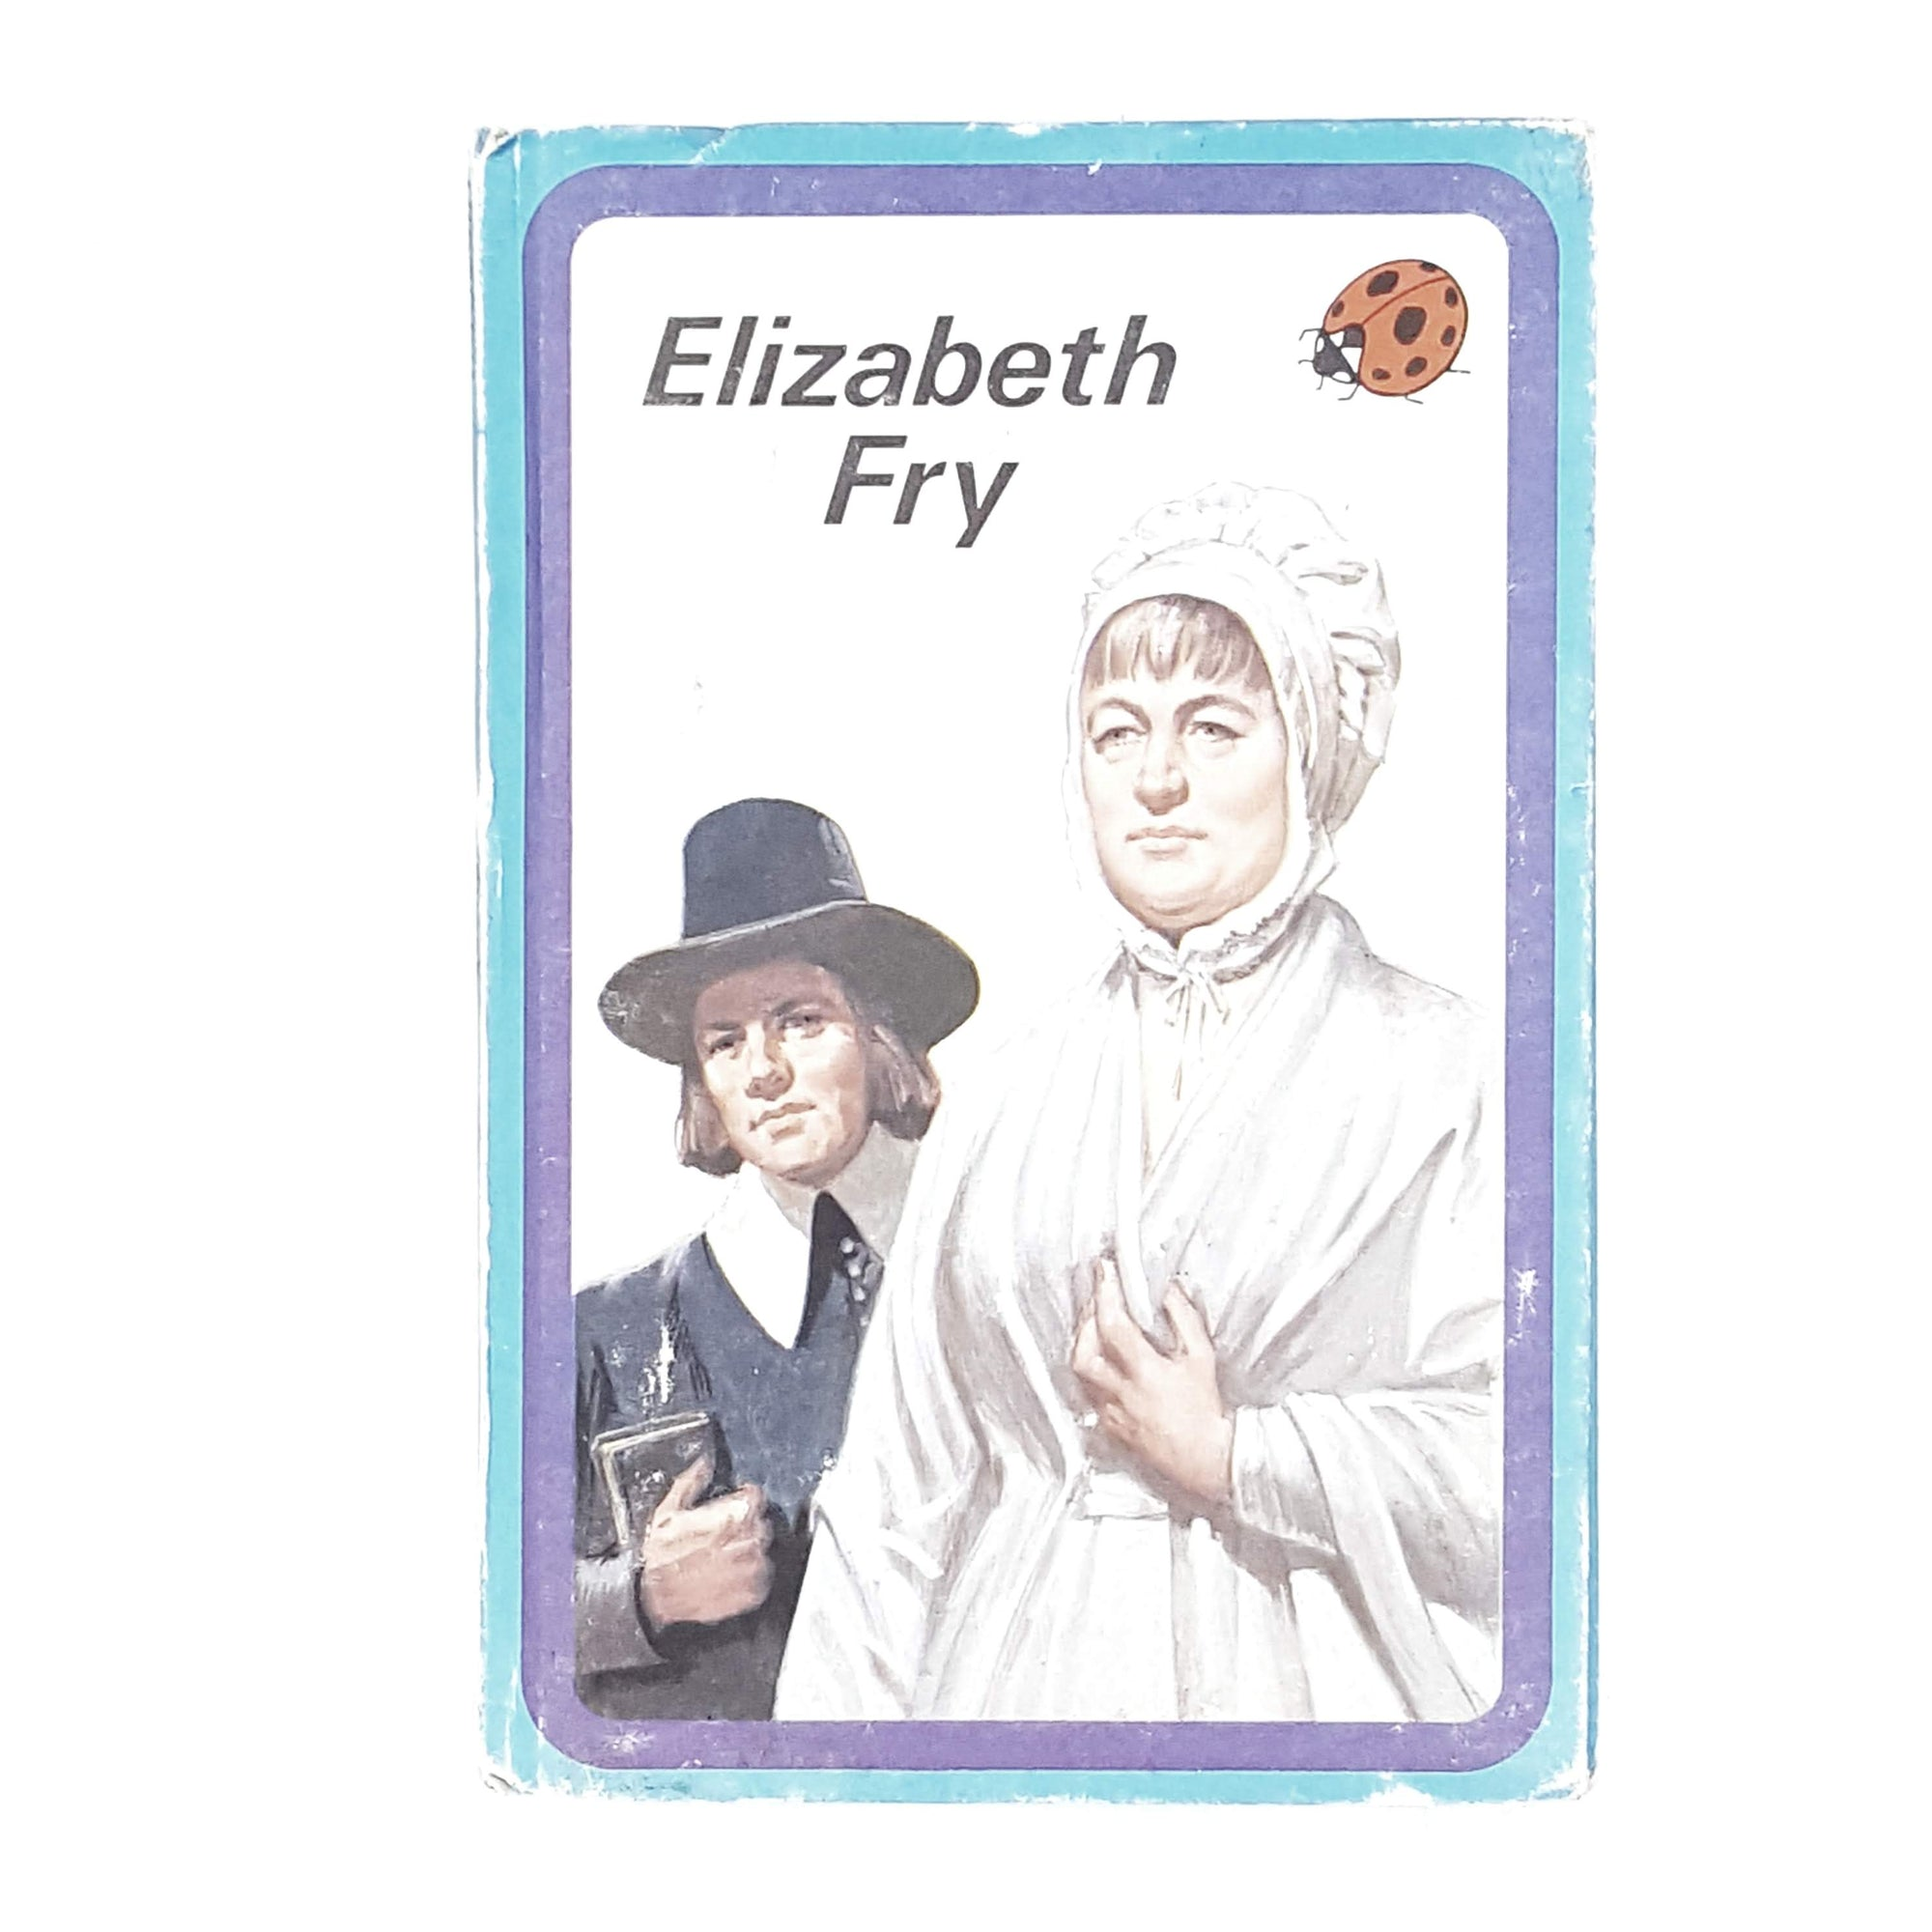 ladybird-history-elizabeth-fry-1975-vintage-kindergarten-books-online-bookstore-country-house-library